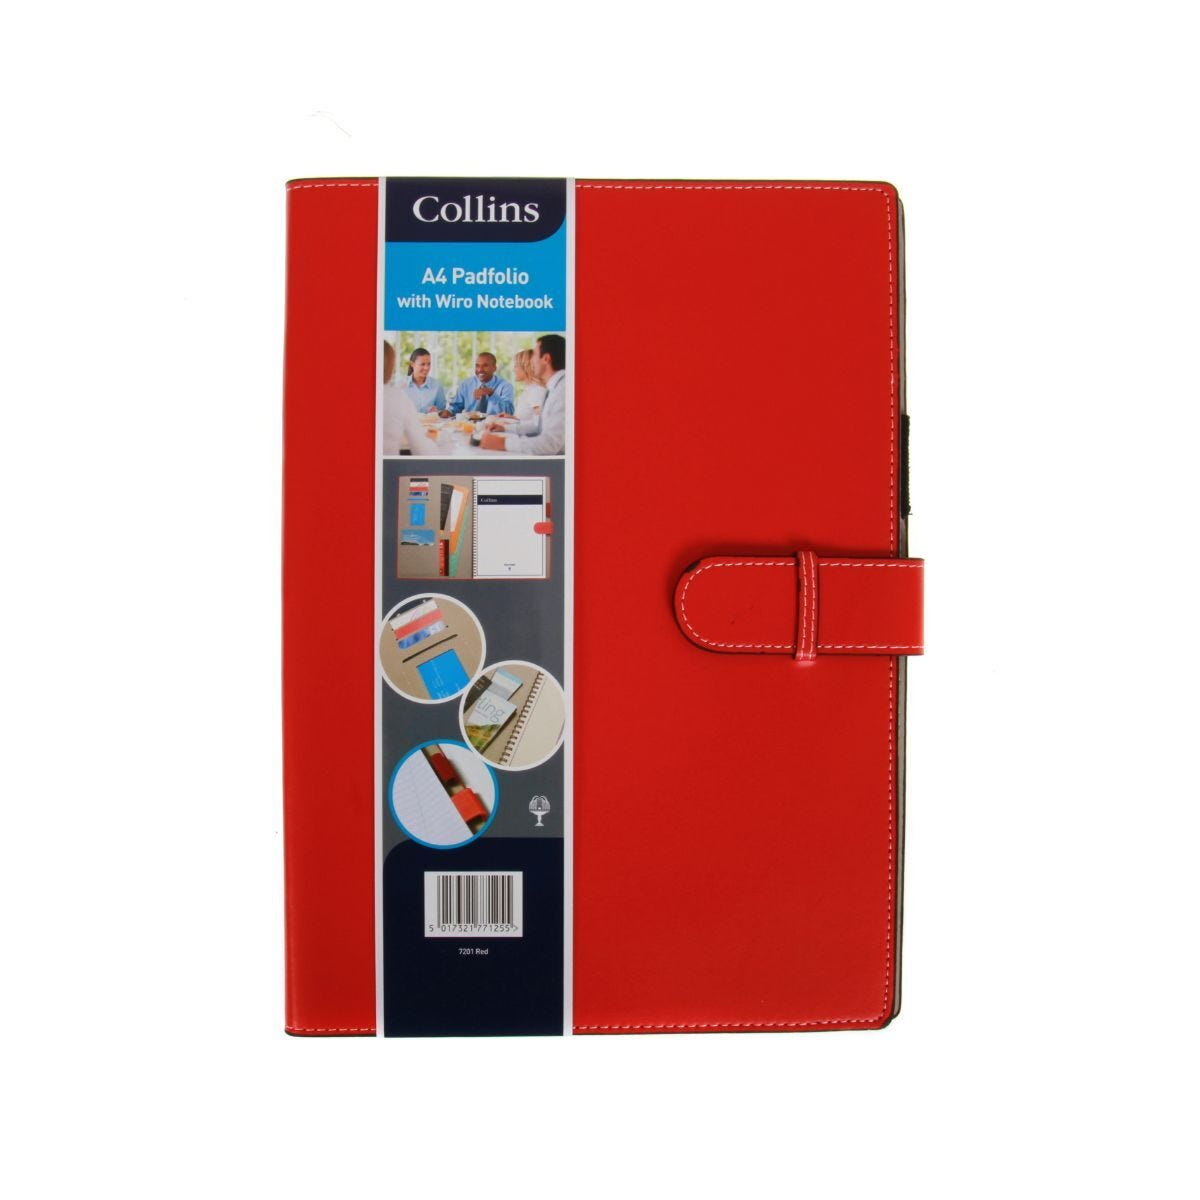 Collins Padfolio With Wiro Notebook A4 Red